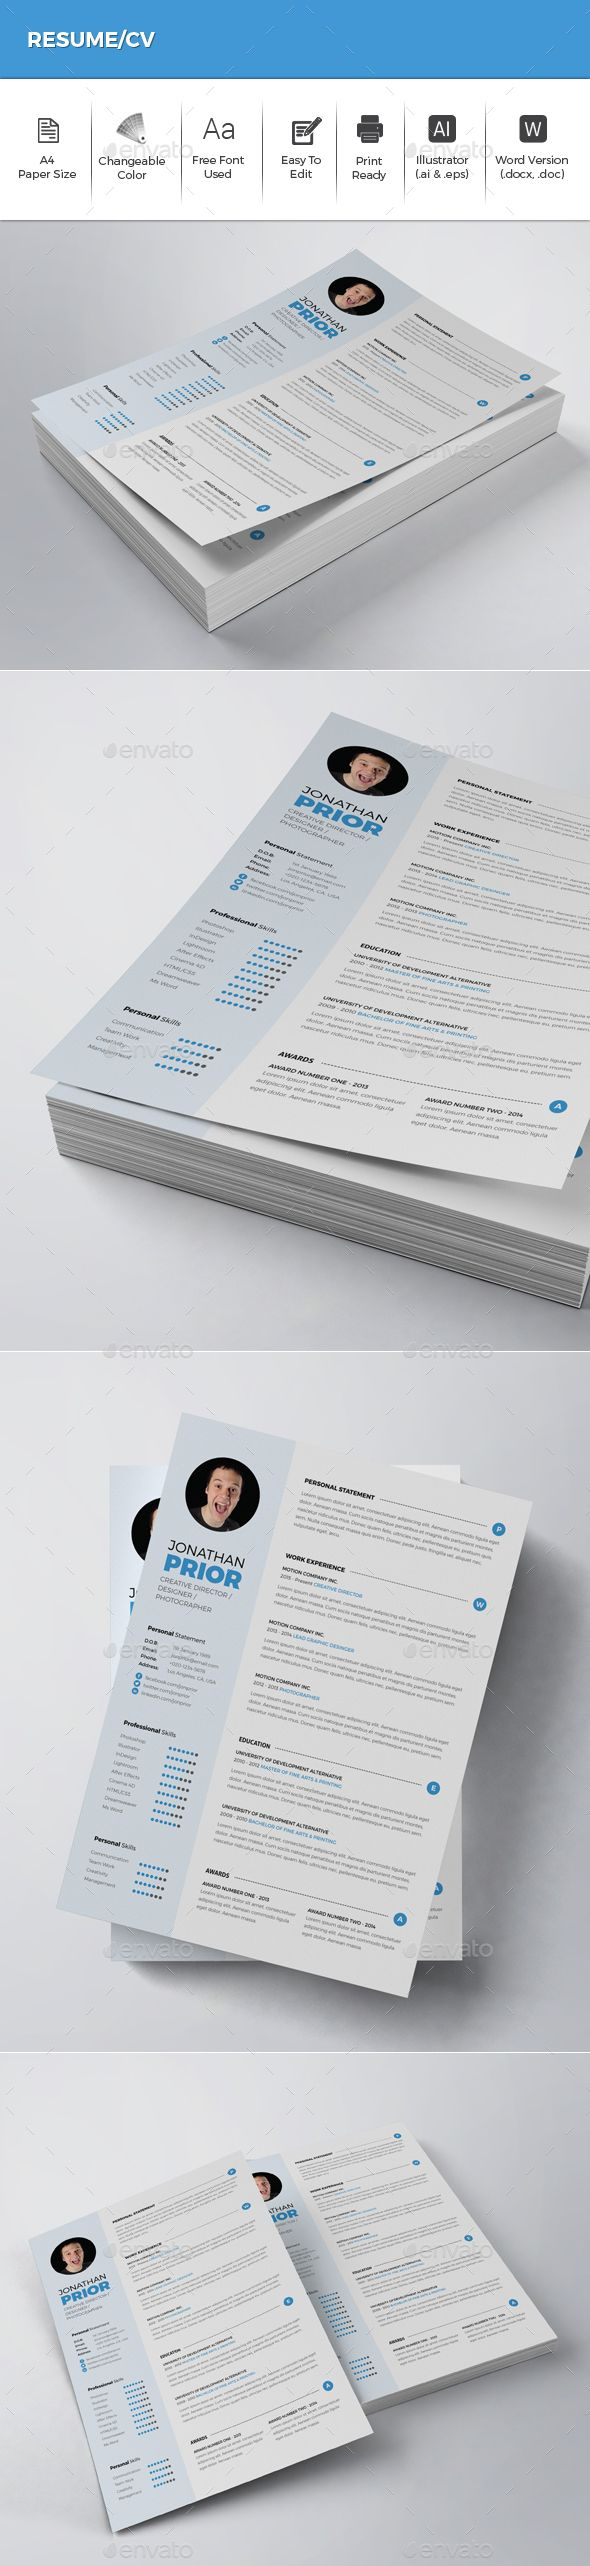 Best Cv  Modelos Images On   Resume Resume Design